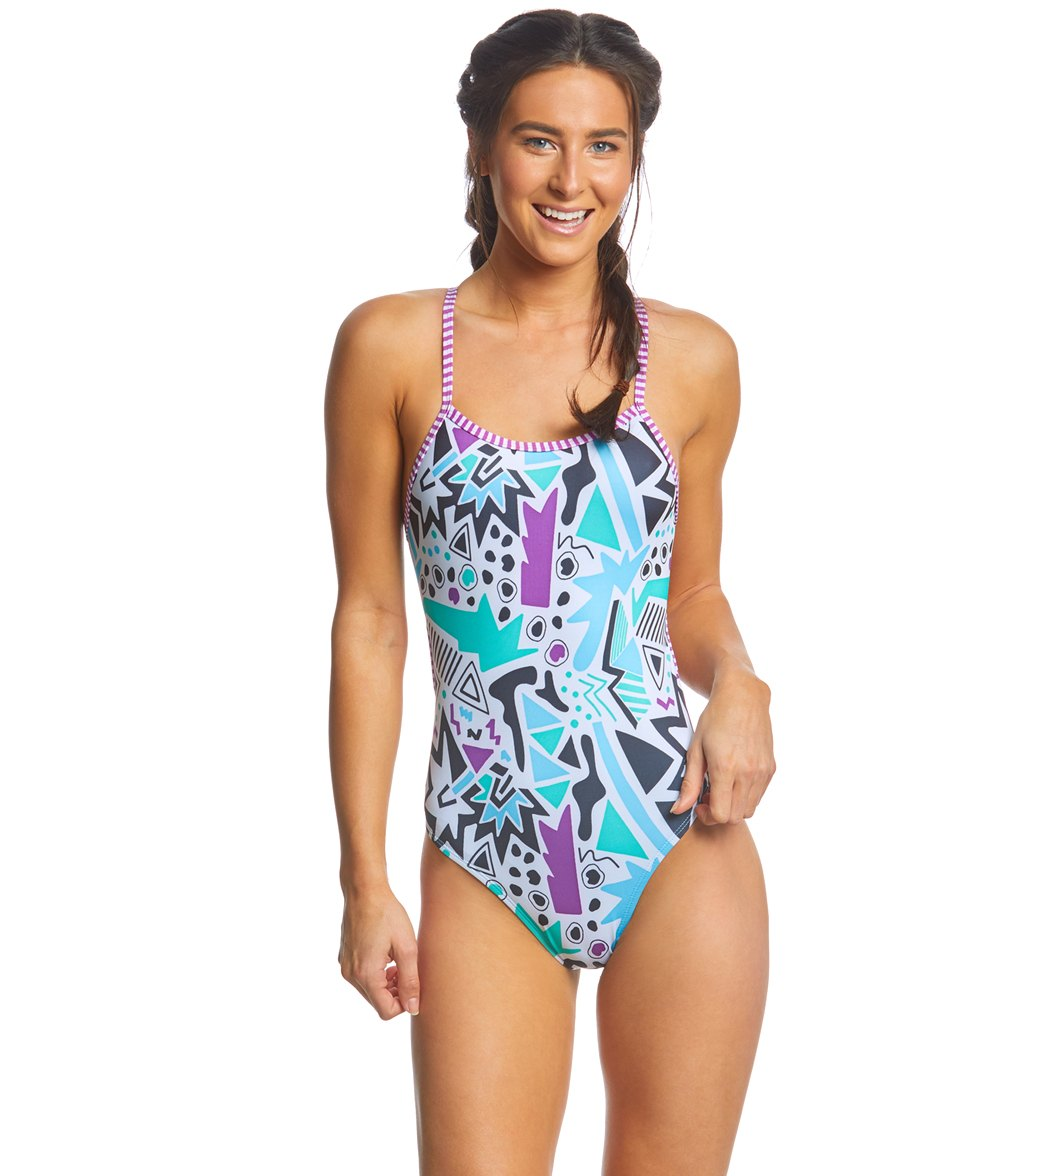 0f16f3fc57a55 ... Dolfin Uglies Women's Push Play String Back One Piece Swimsuit. Play  Video. MODEL MEASUREMENTS